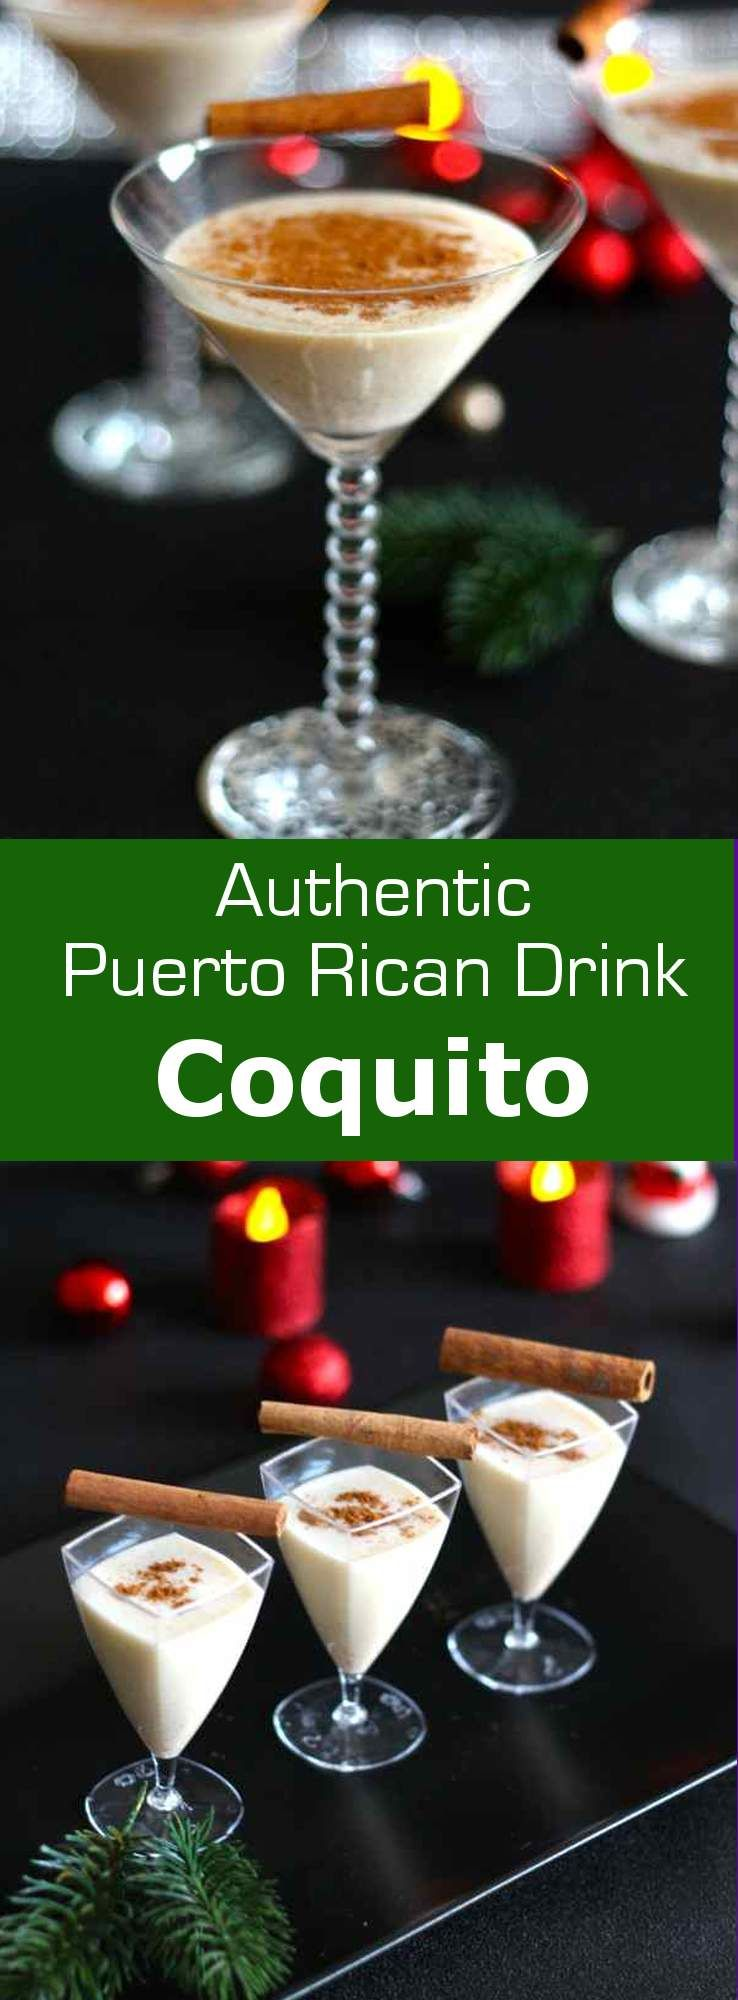 coquito is the traditional puerto rican christmas drink that is no other than an eggnog with - Puerto Rican Christmas Drink